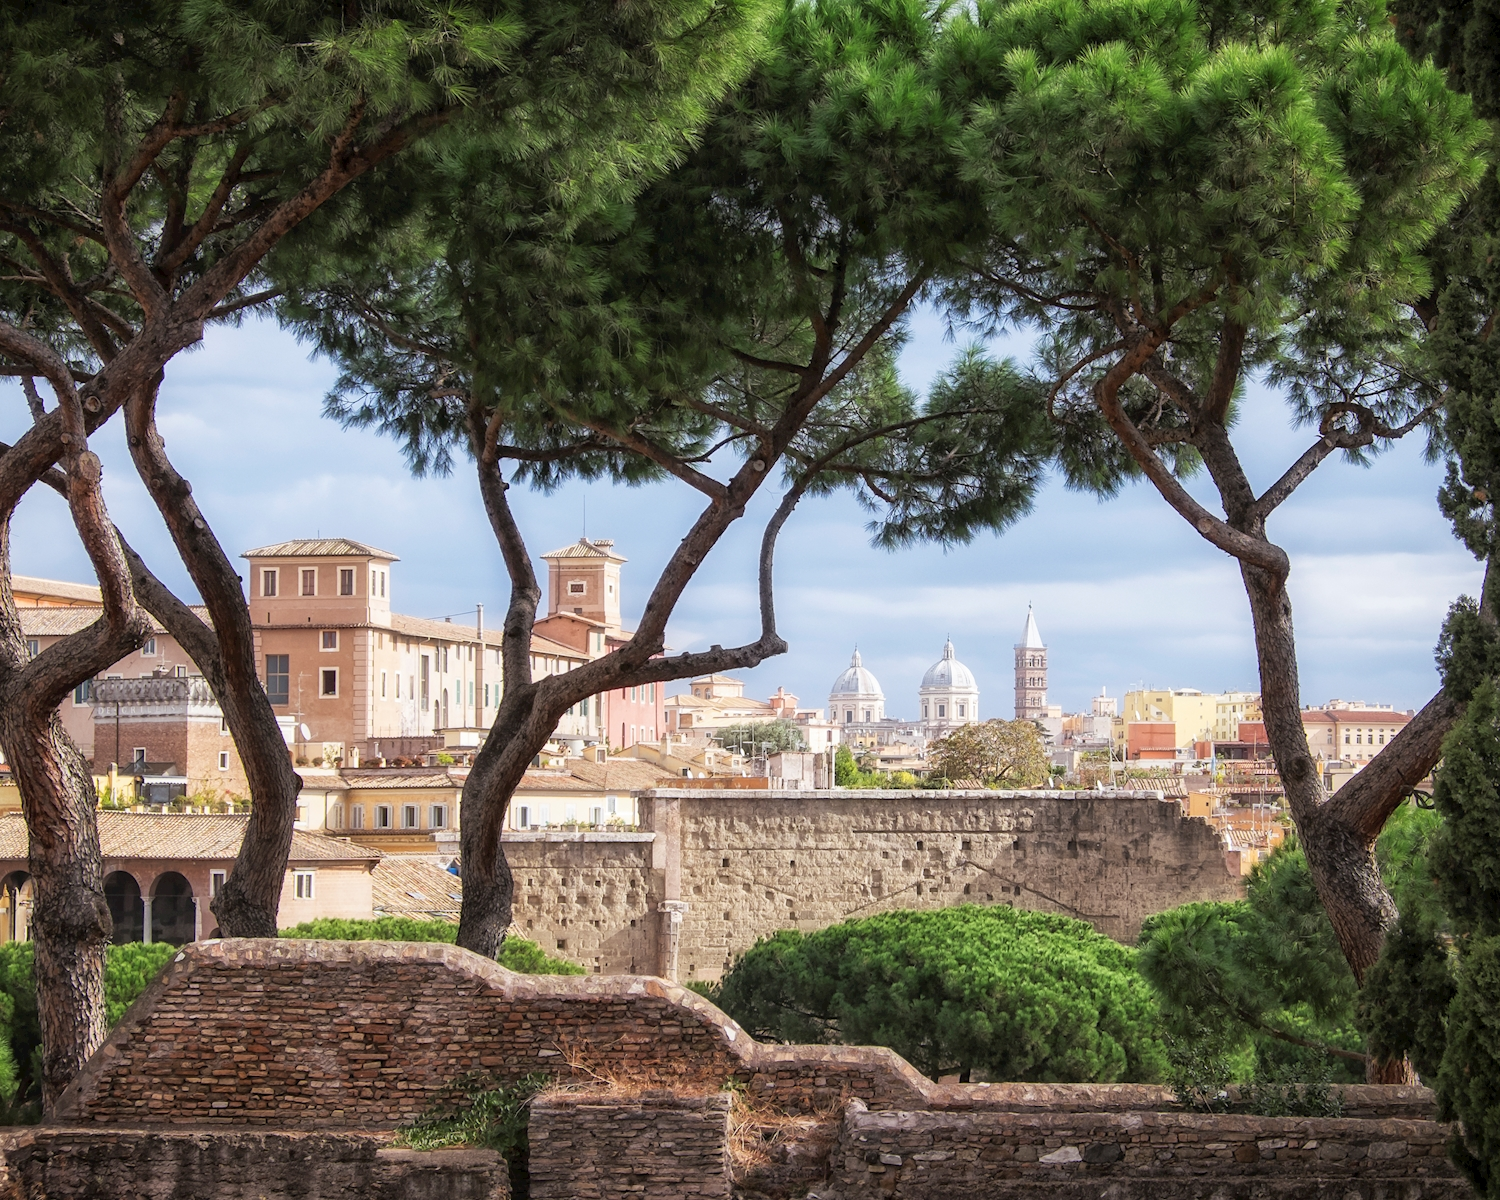 View from Capitoline Hill posters & prints by J-O Eriksson